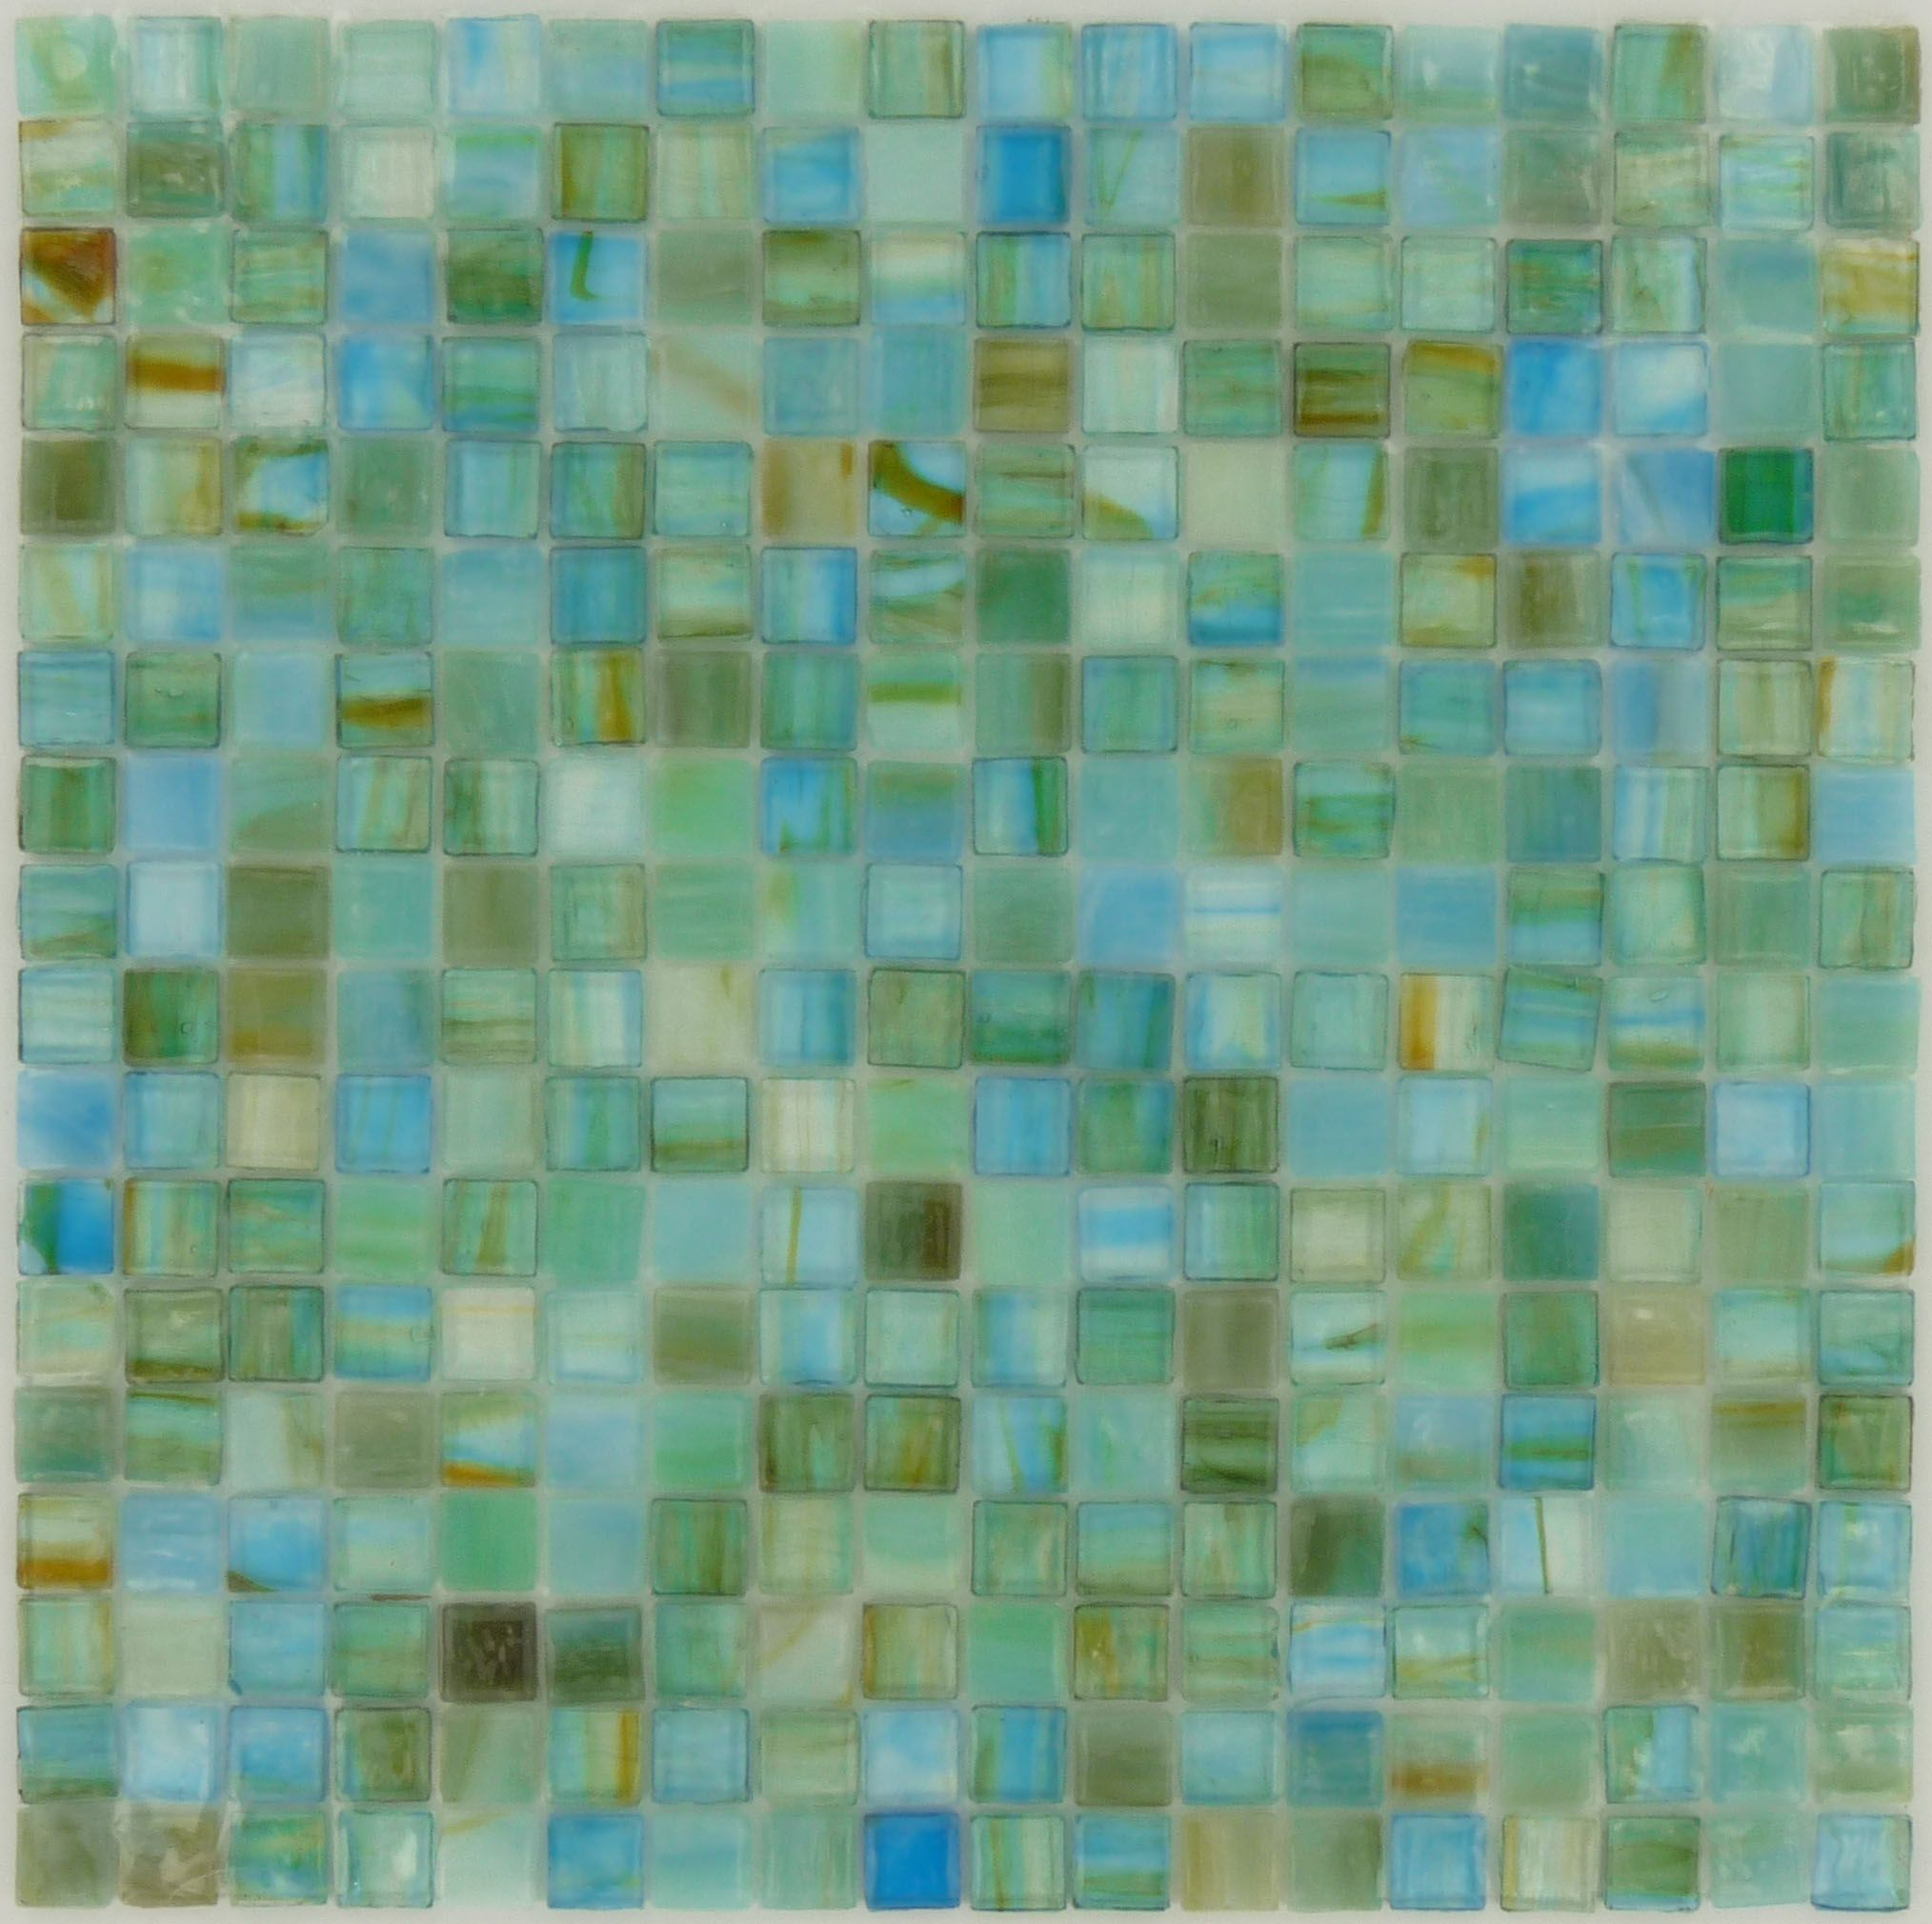 Botanical glass sea glass tiles 5 8 x 5 8 prairie for Sea glass bathroom ideas